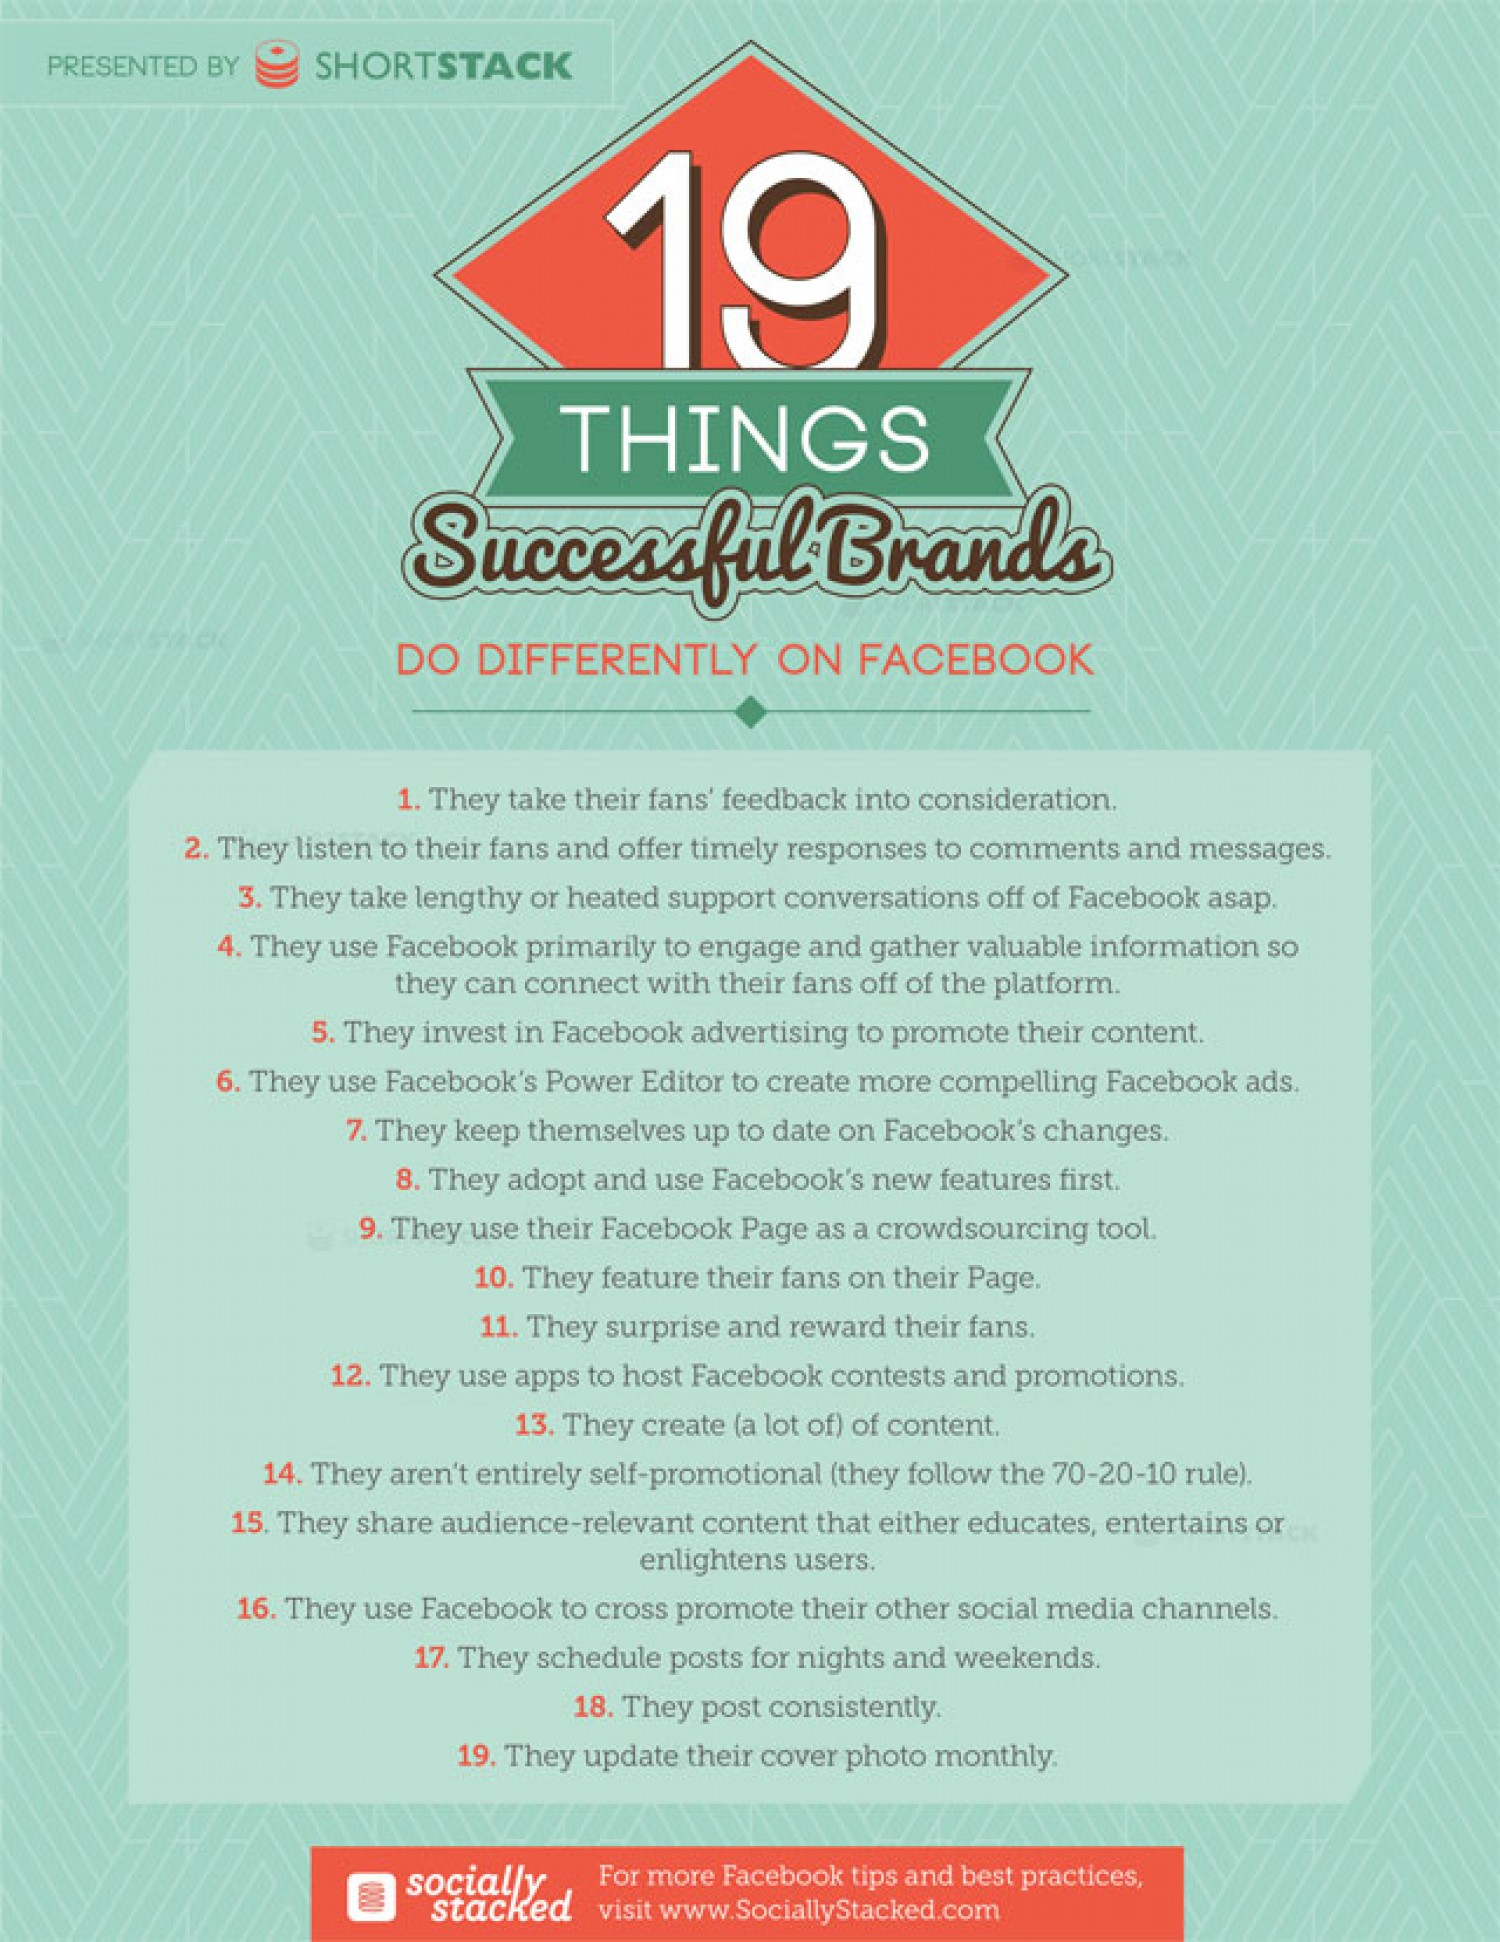 19 Things Successful Brands Do Differently on Facebook - infographic